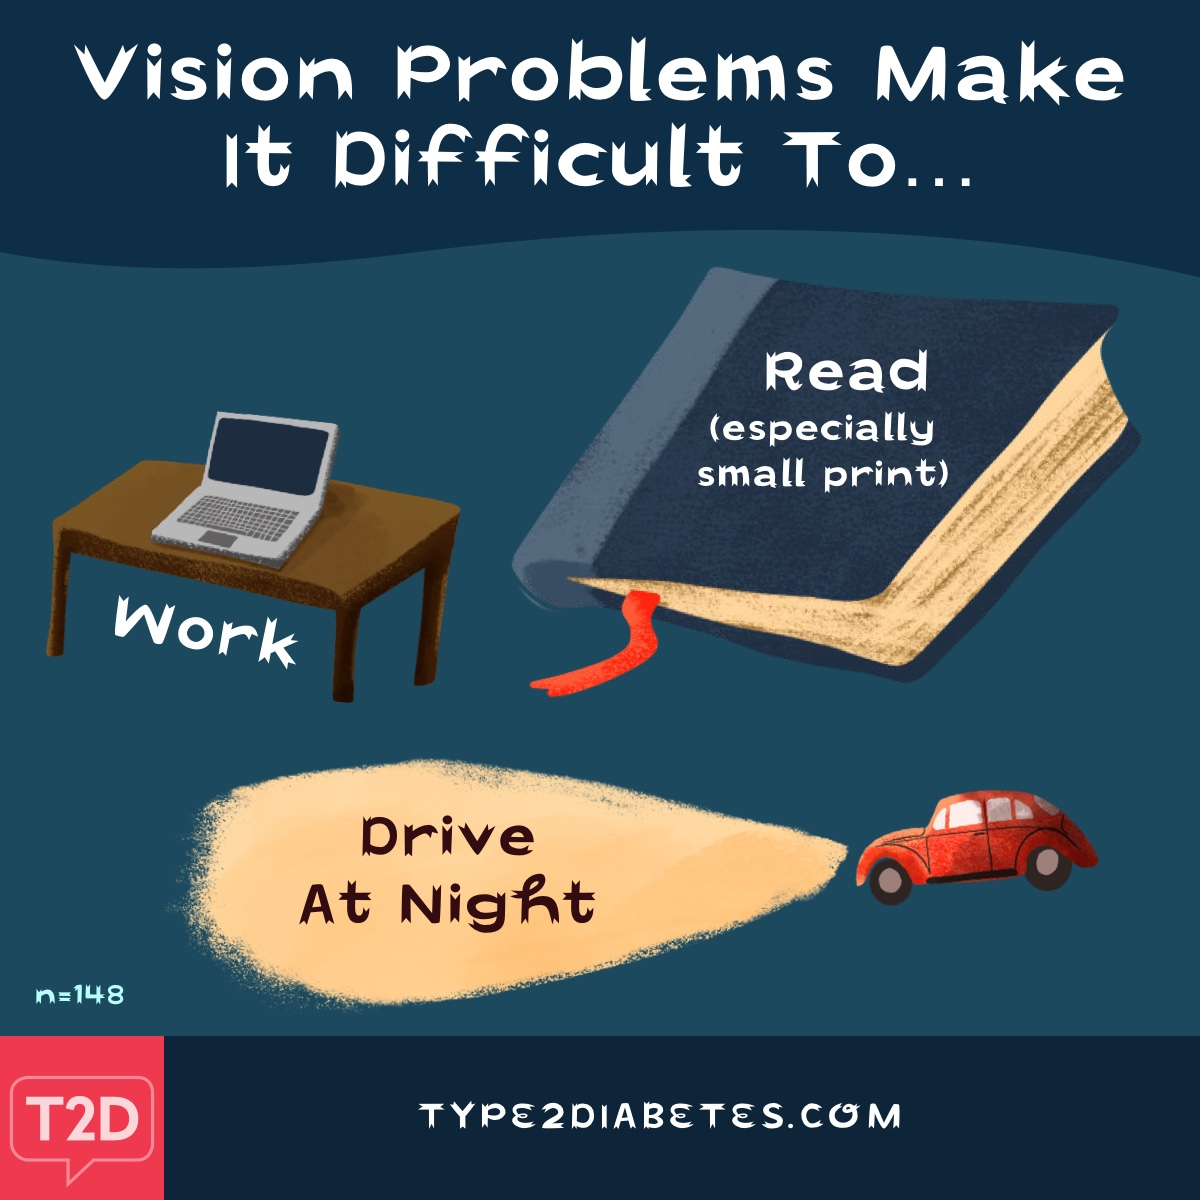 Vision problems make it difficult to read (especially small print), work and drive at night